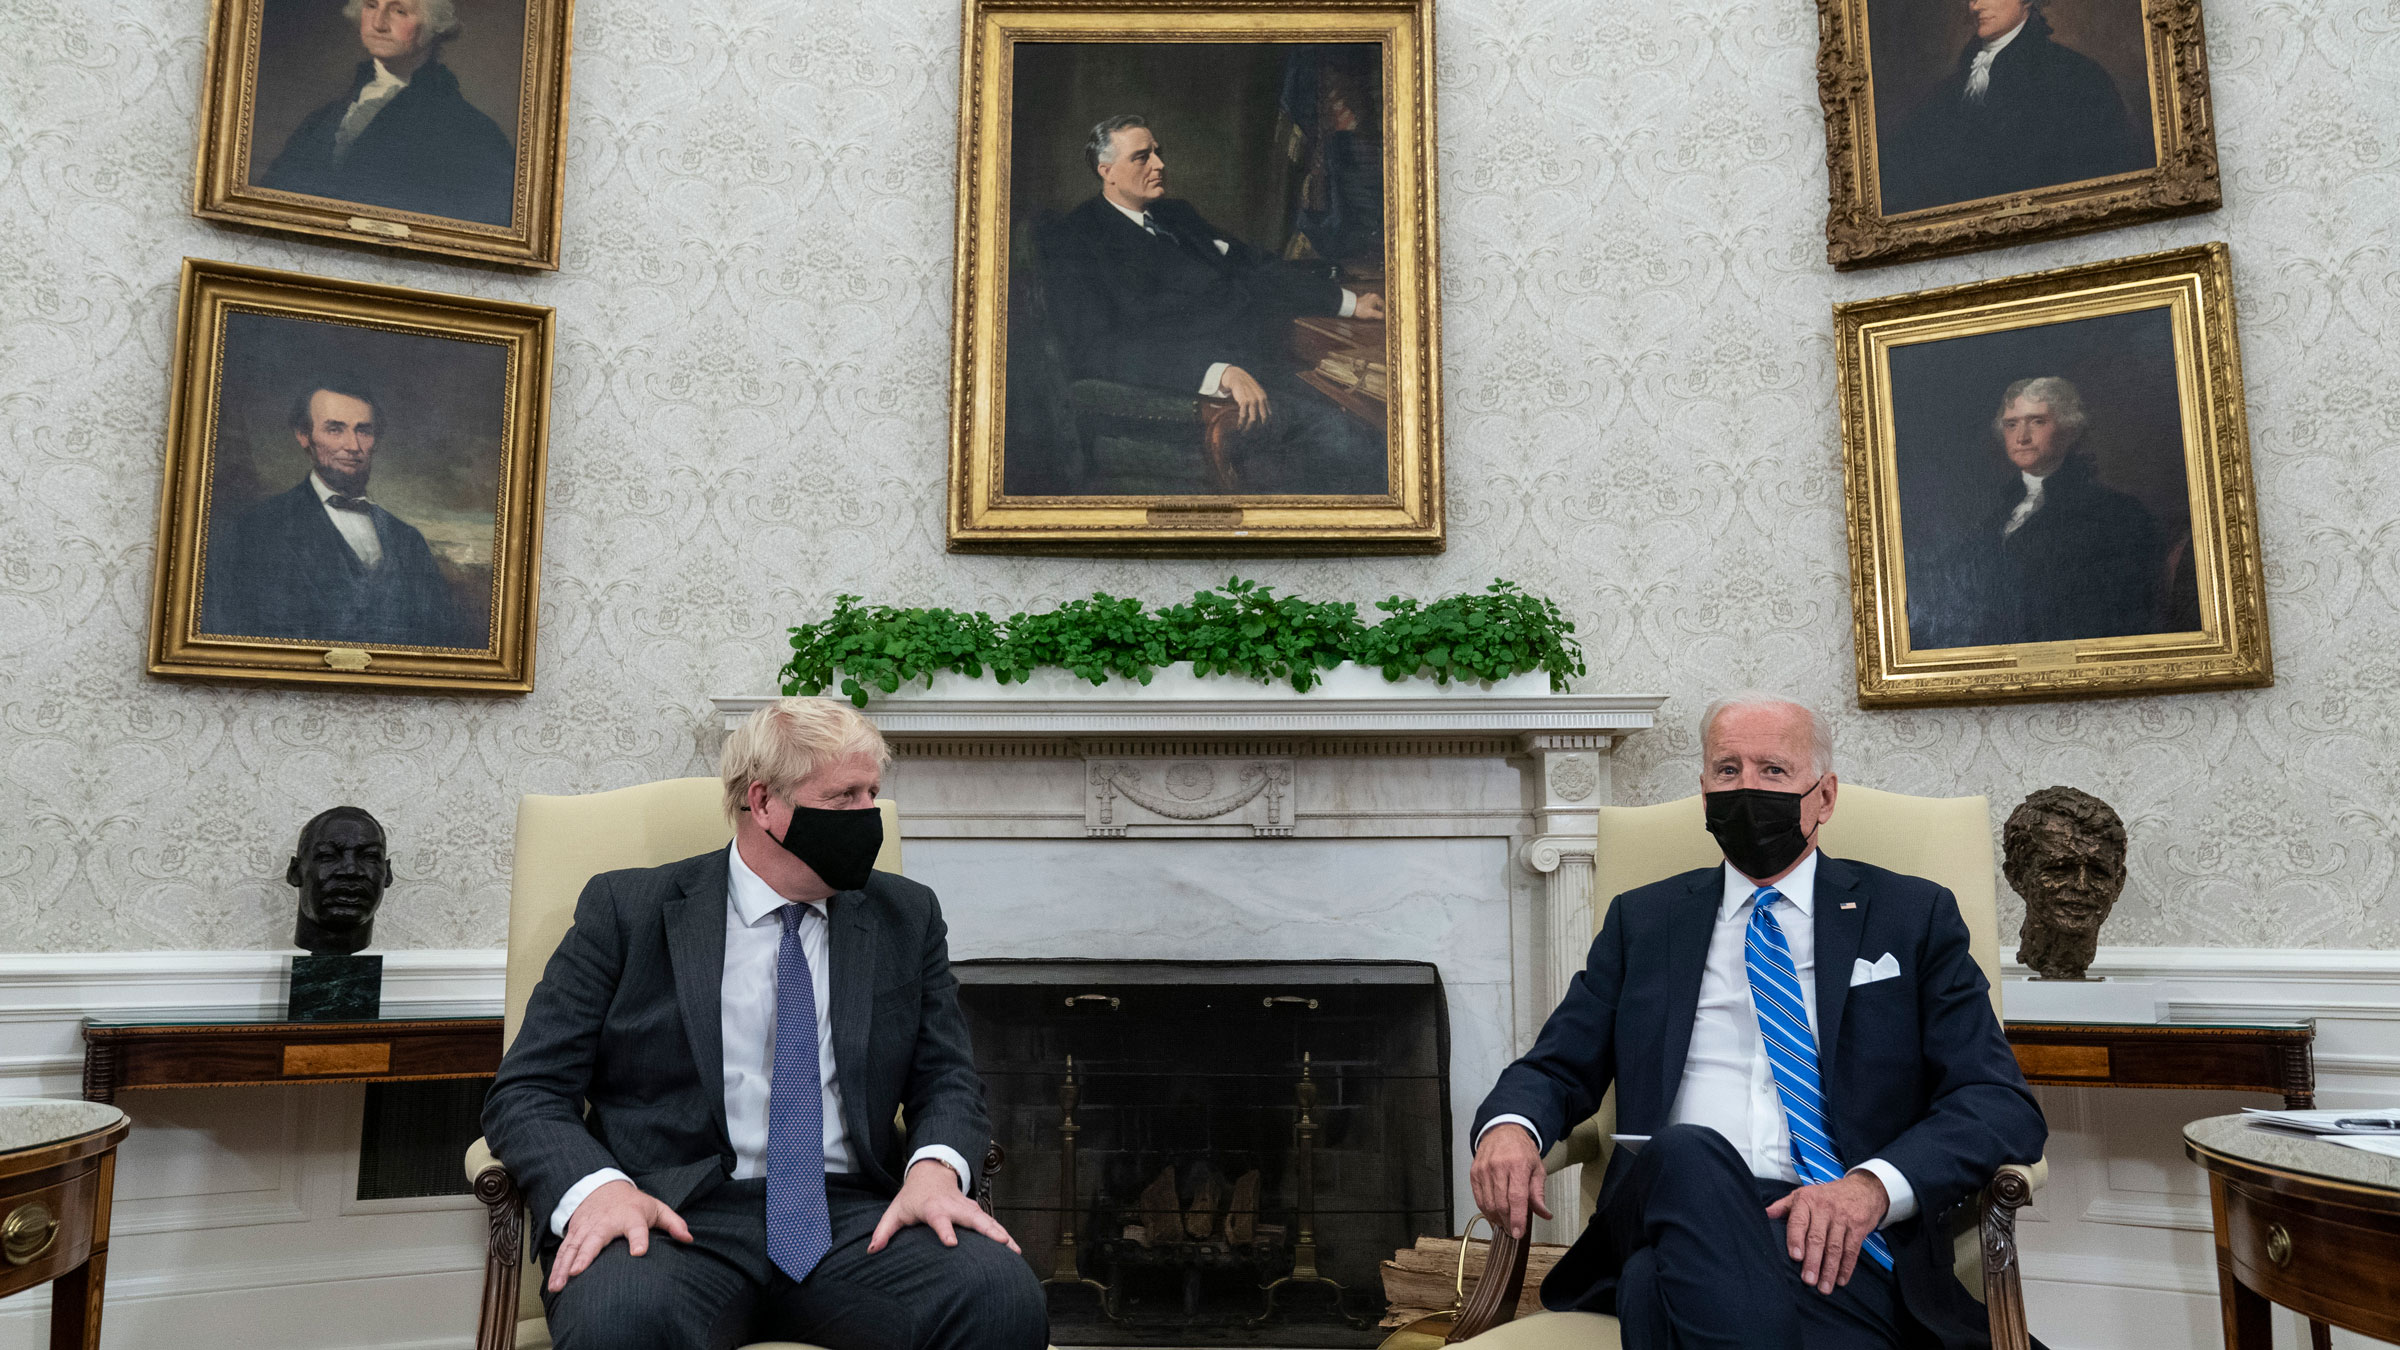 US President Joe Biden, right, speaks during an Oval Office meeting with British Prime Minister Boris Johnson on Tuesday.